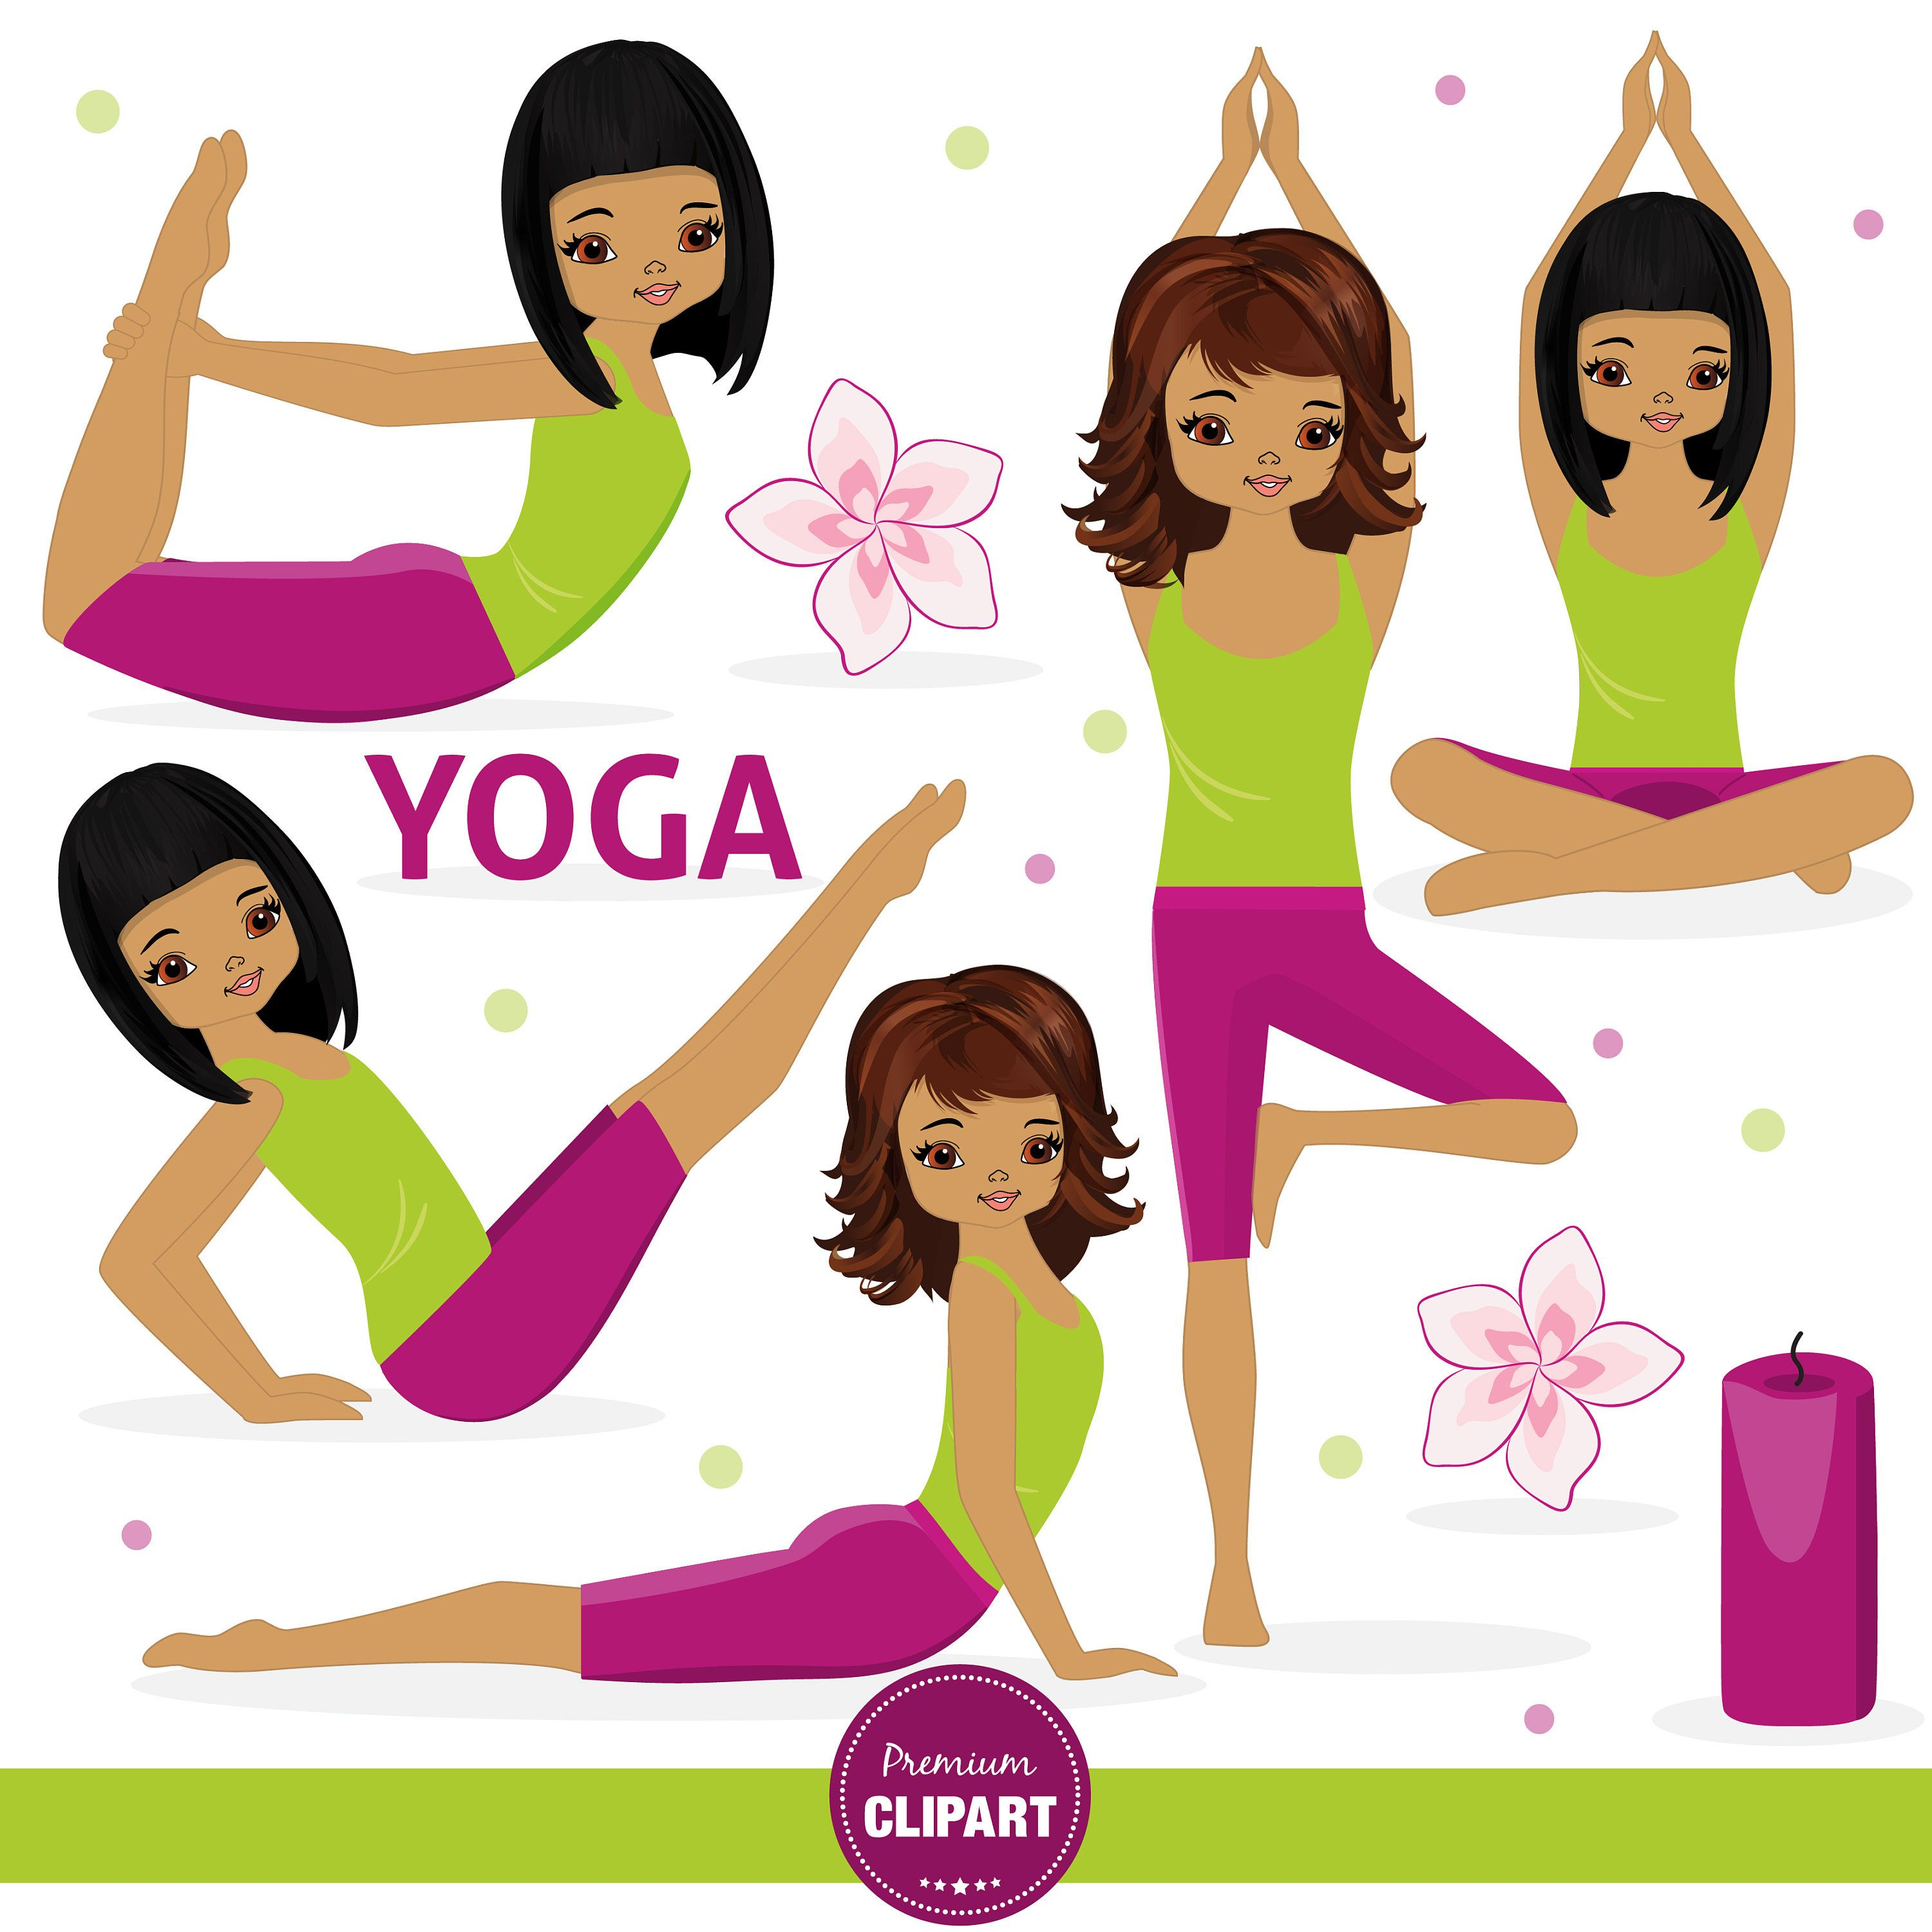 African American Yoga clipart, Yoga images, Girl clipart, Yoga.